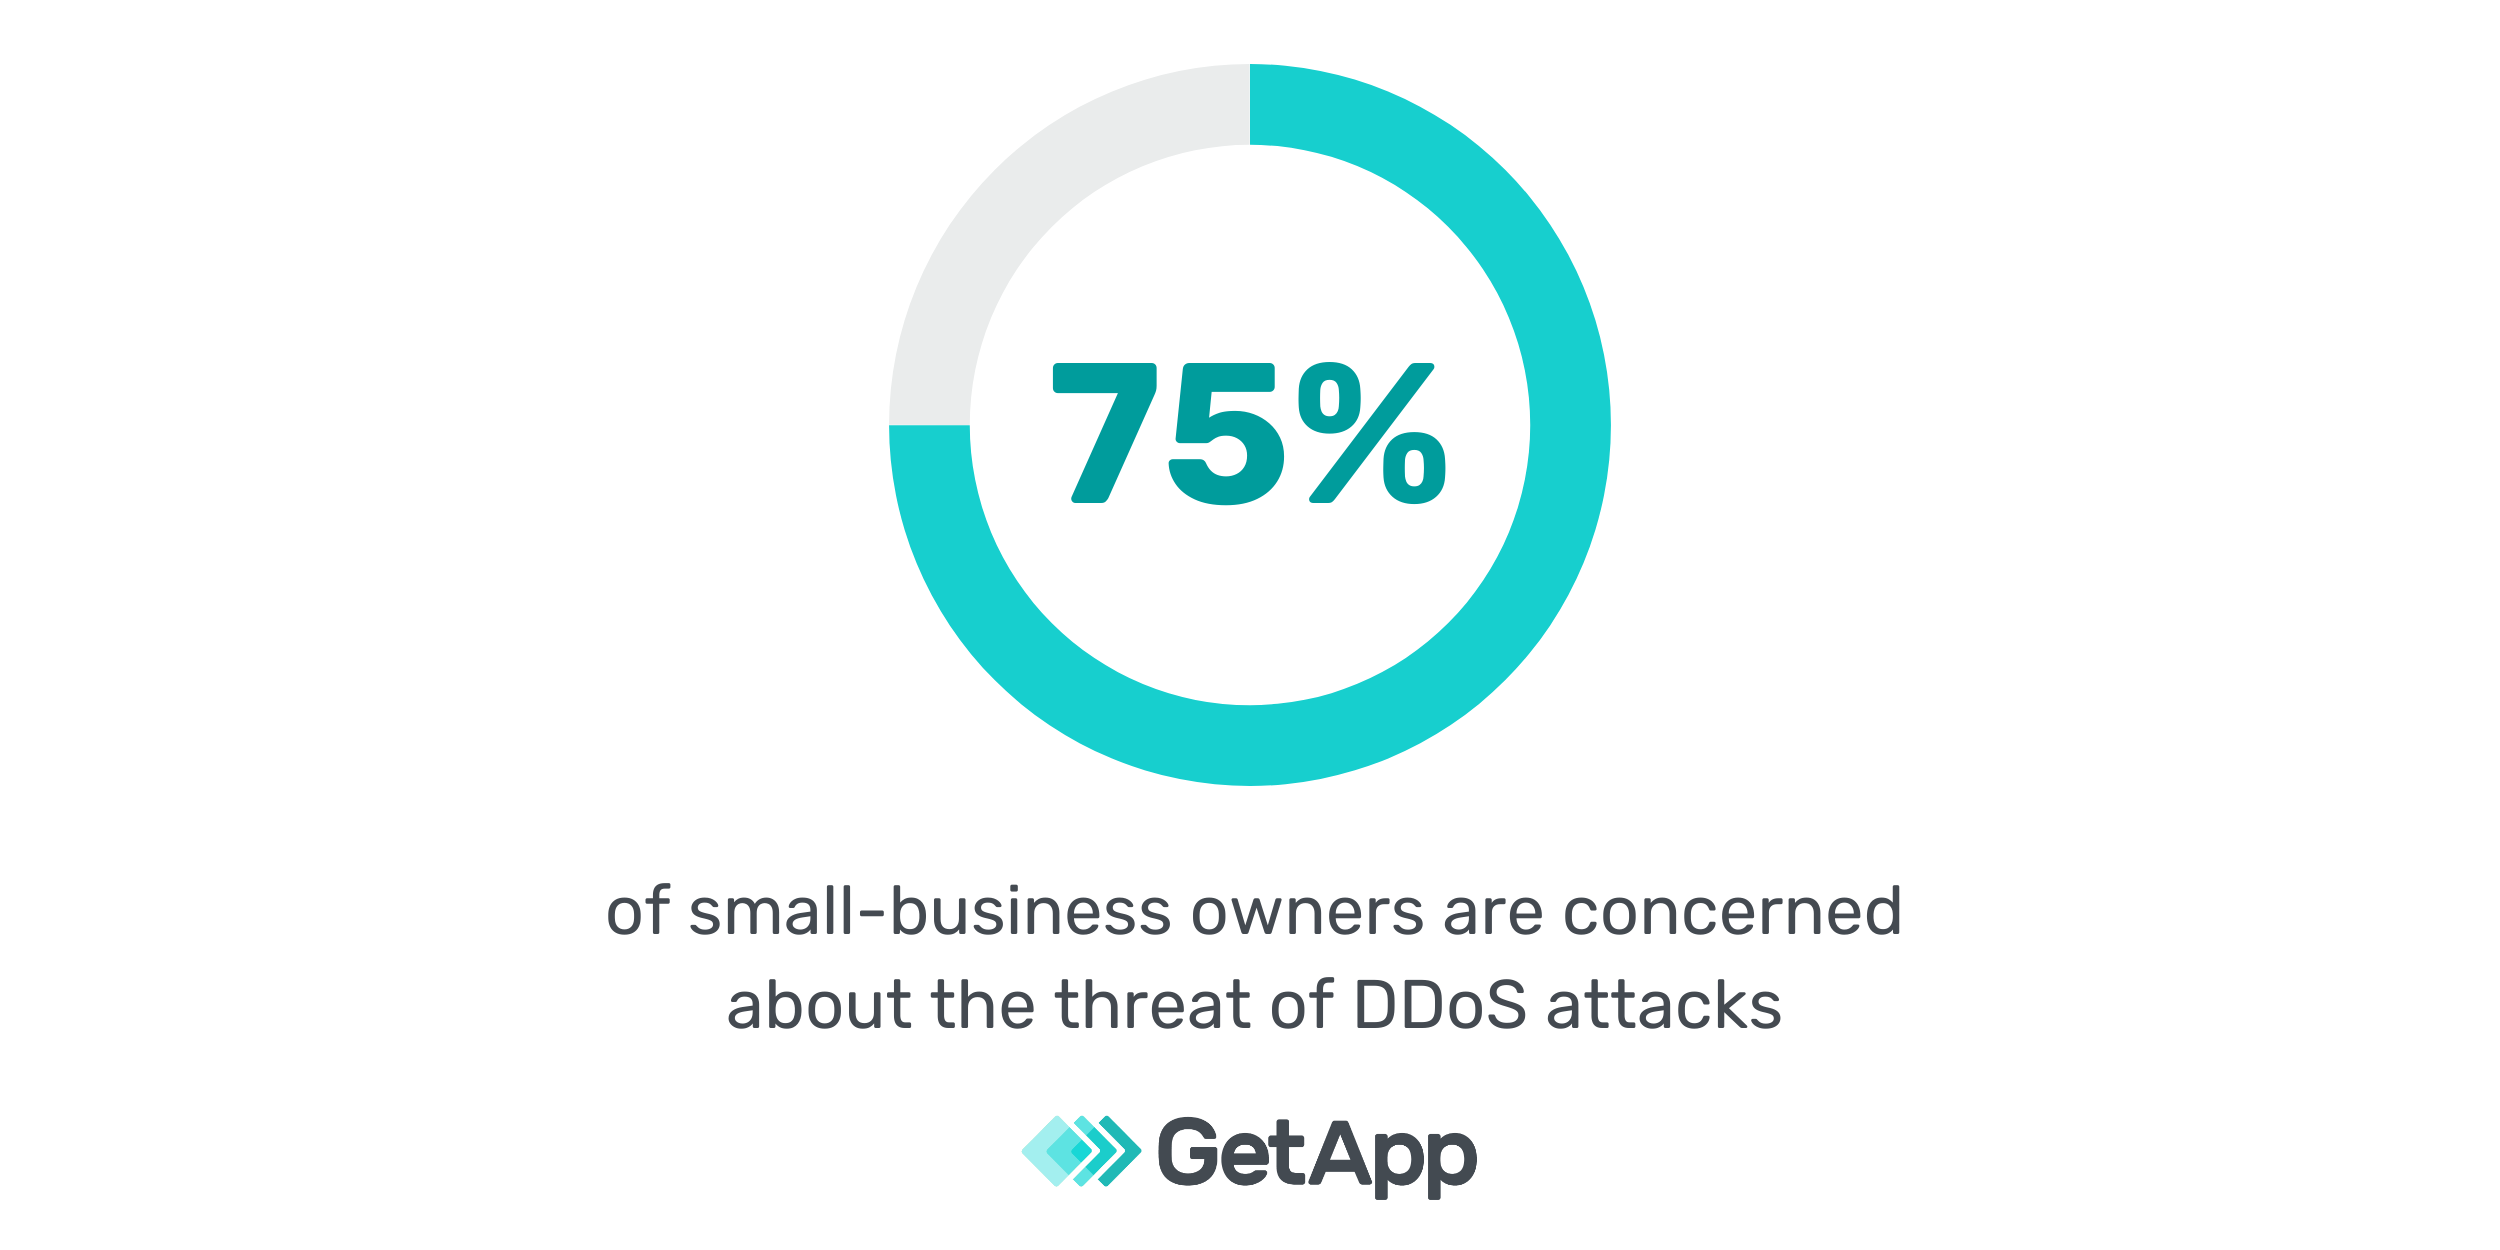 seventy five percent of small-business owners are concerned about ddos attacks